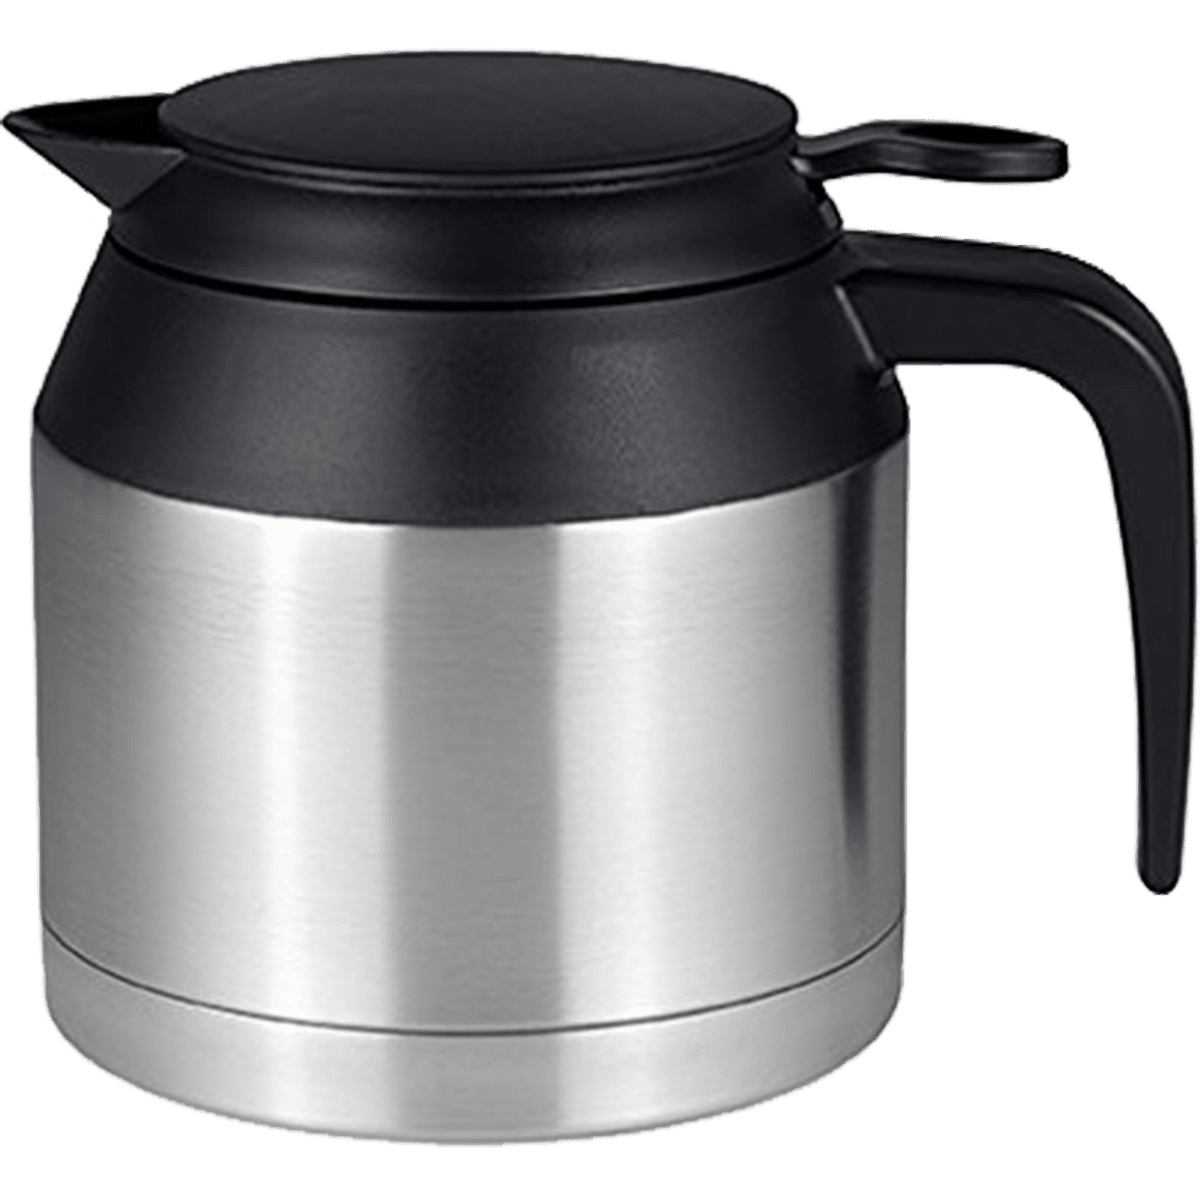 Bonavita Coffee Maker Replacement Thermal Carafe : Bonavita 5 Cup Stainless Steel Thermal Carafe (53235) Quench Essentials